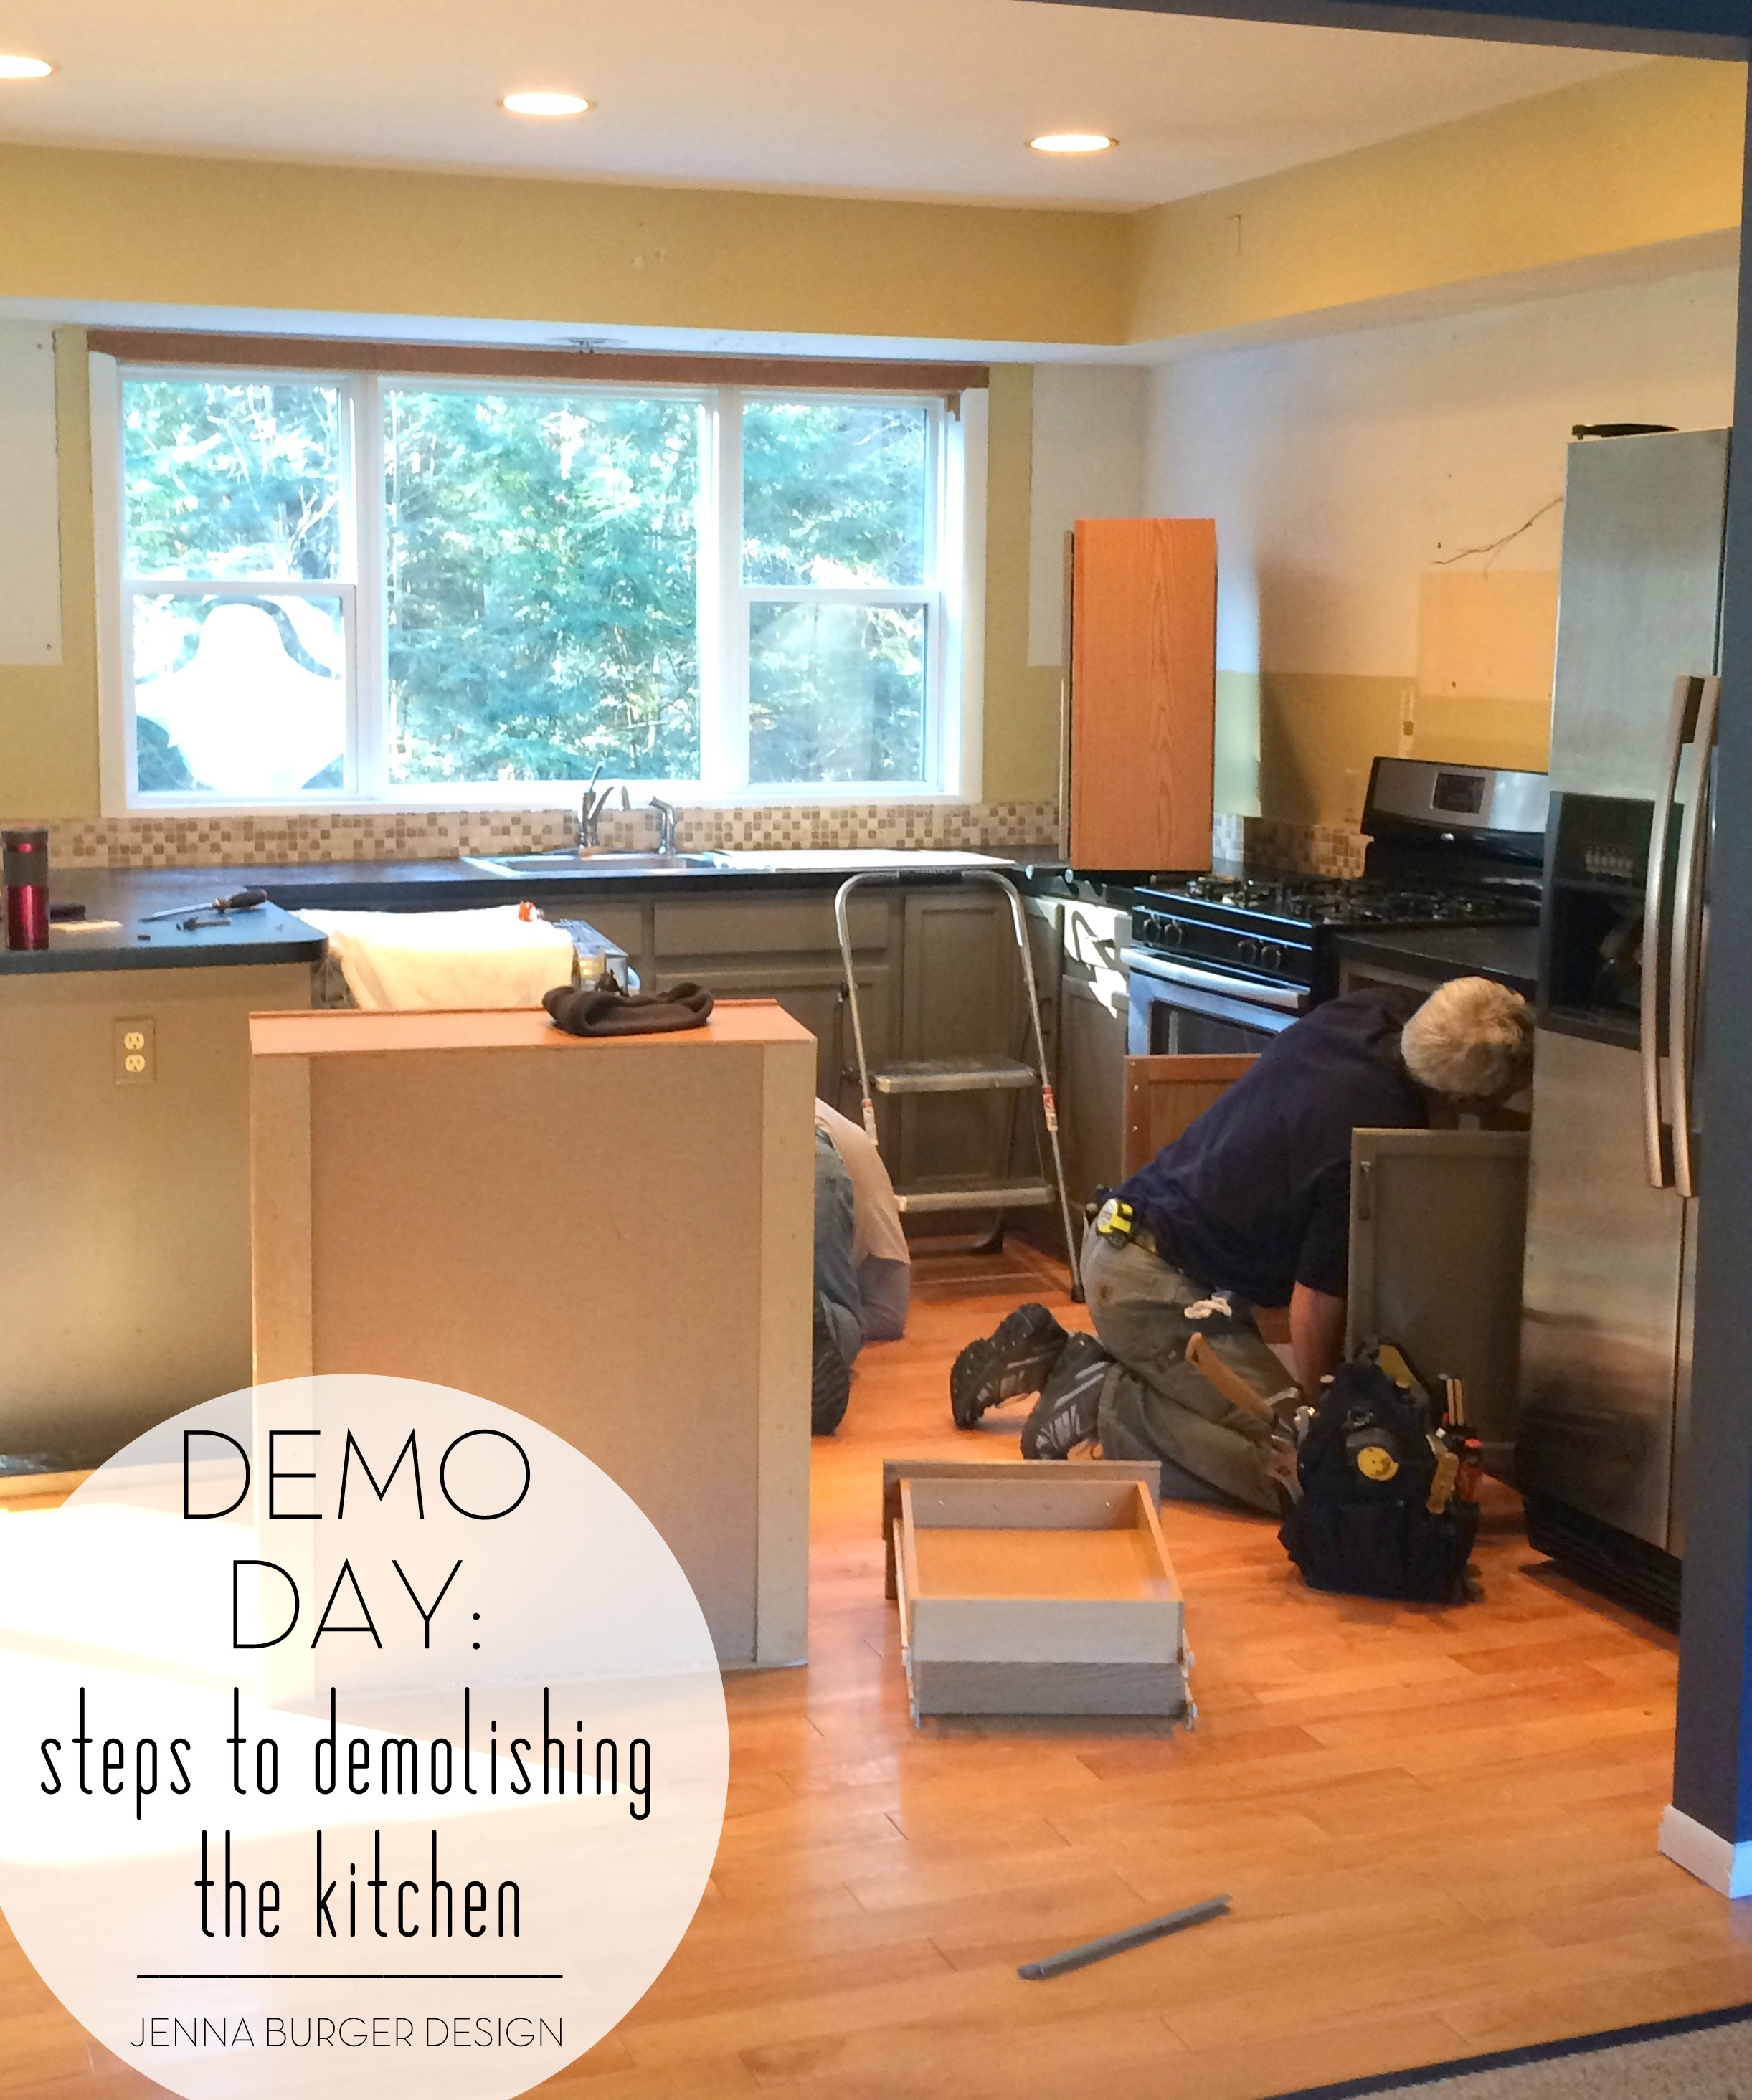 Steps To Remodel Kitchen Demo Day Steps For Demolishing The Kitchen Jenna Burger